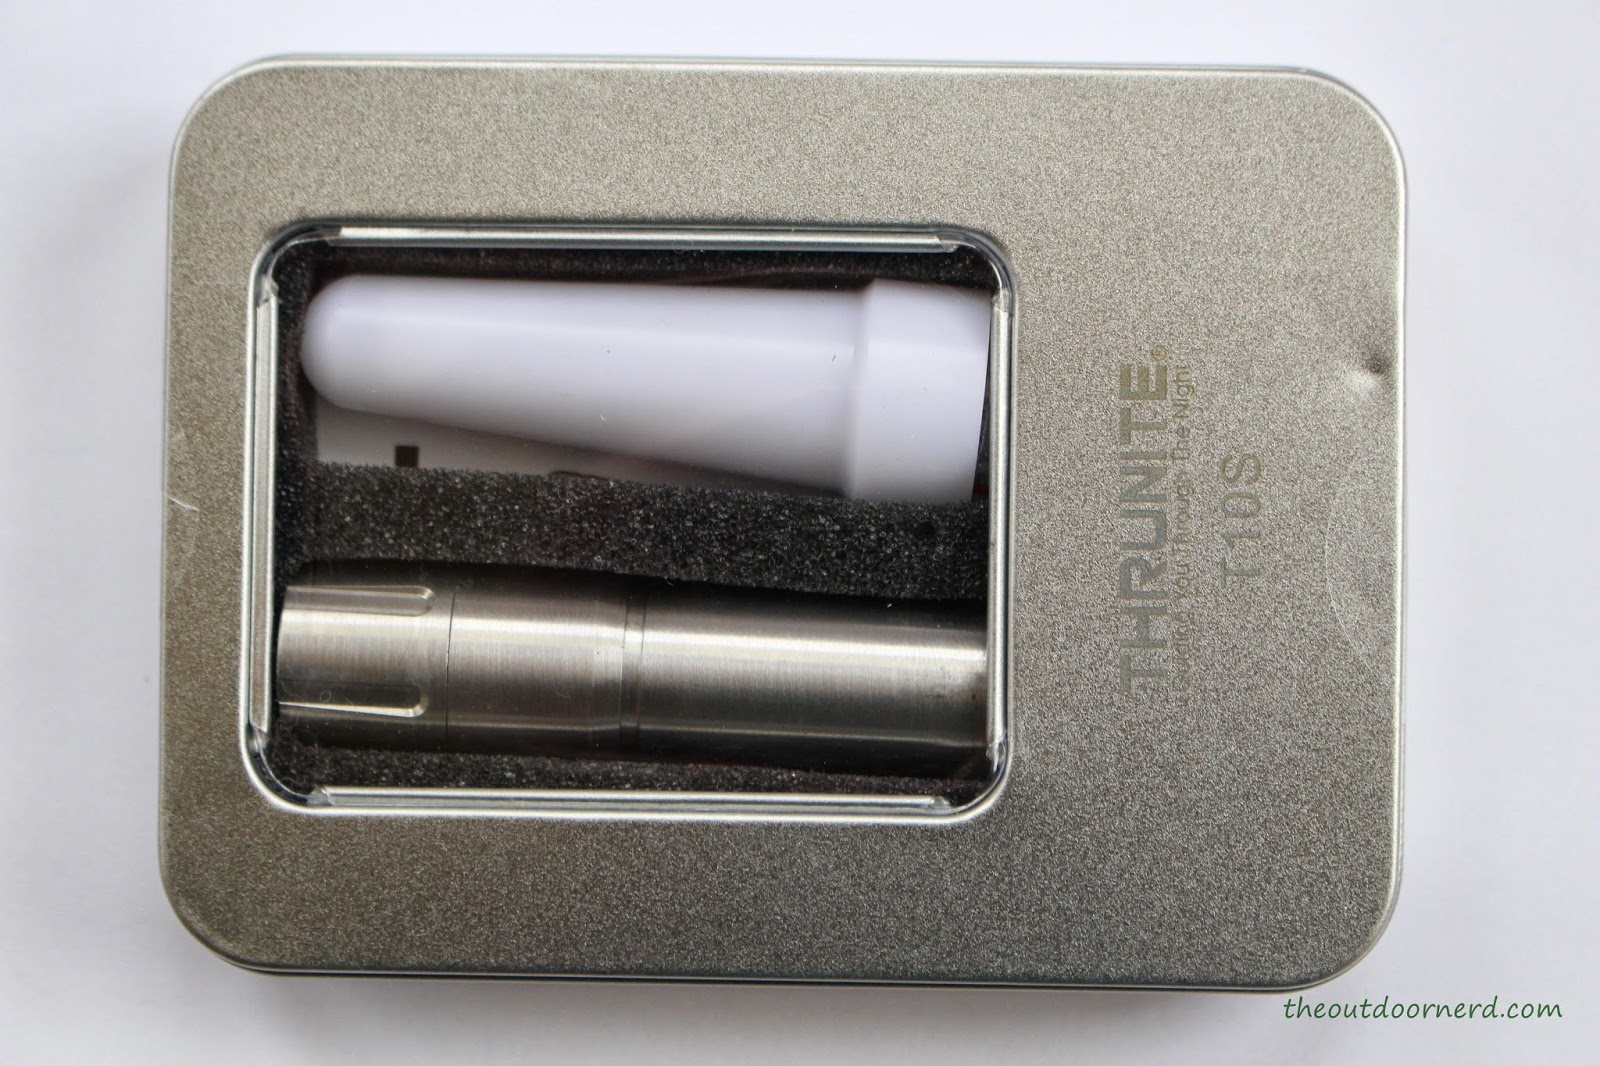 Thrunite T10S 1xAA Flashlight Packaging 1